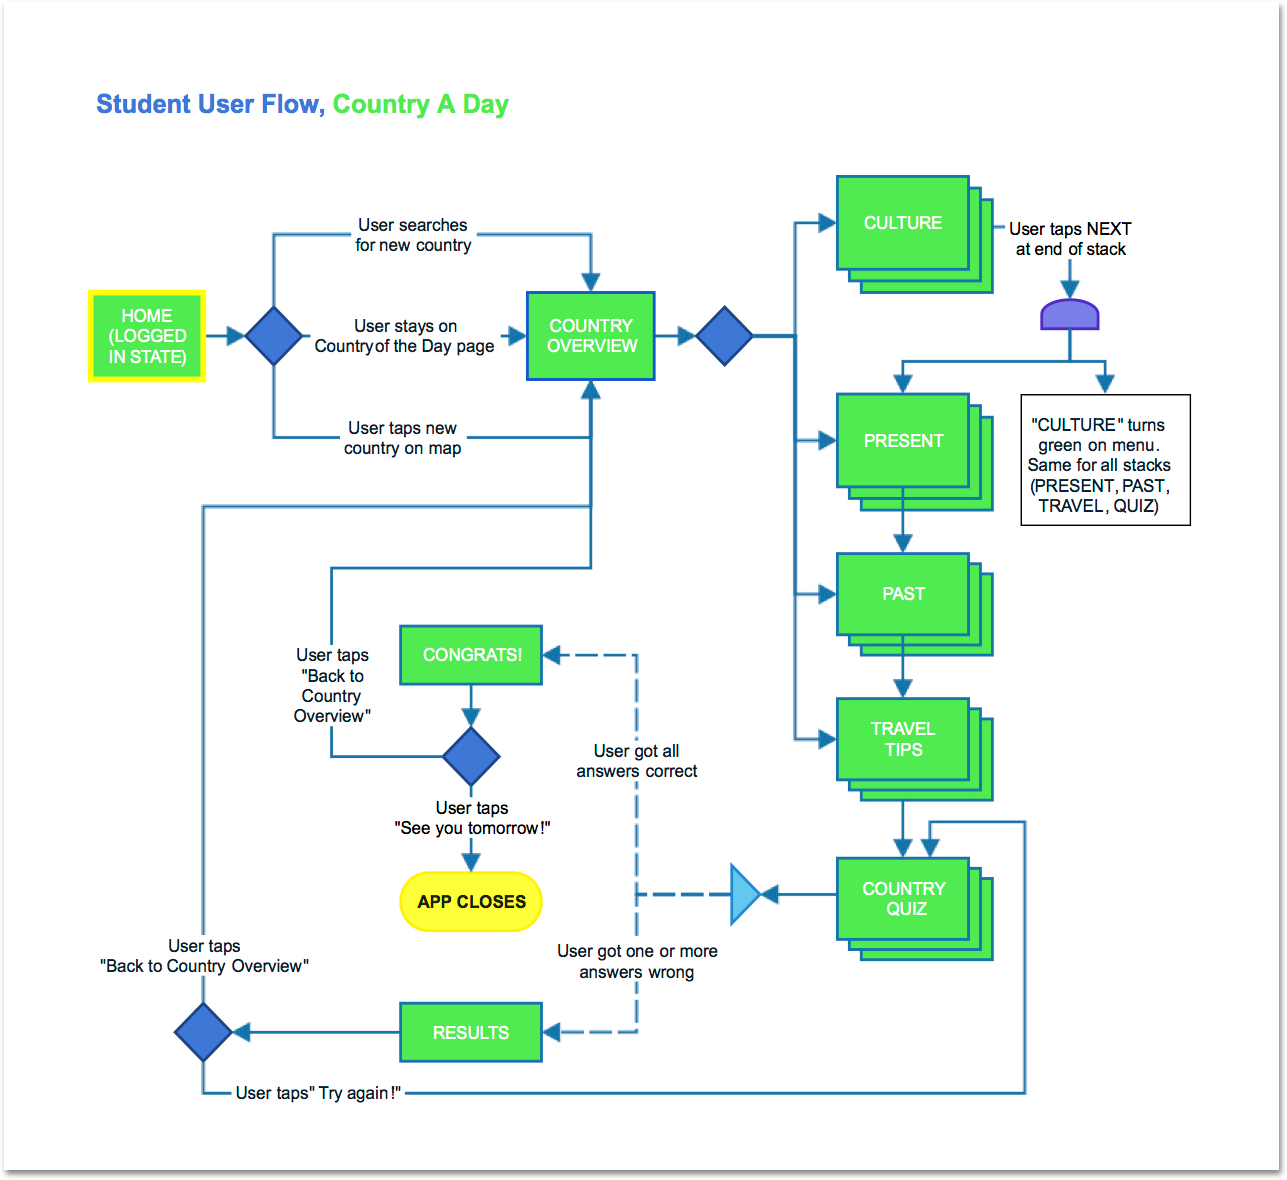 Student-User-Flow-Country-A-Day